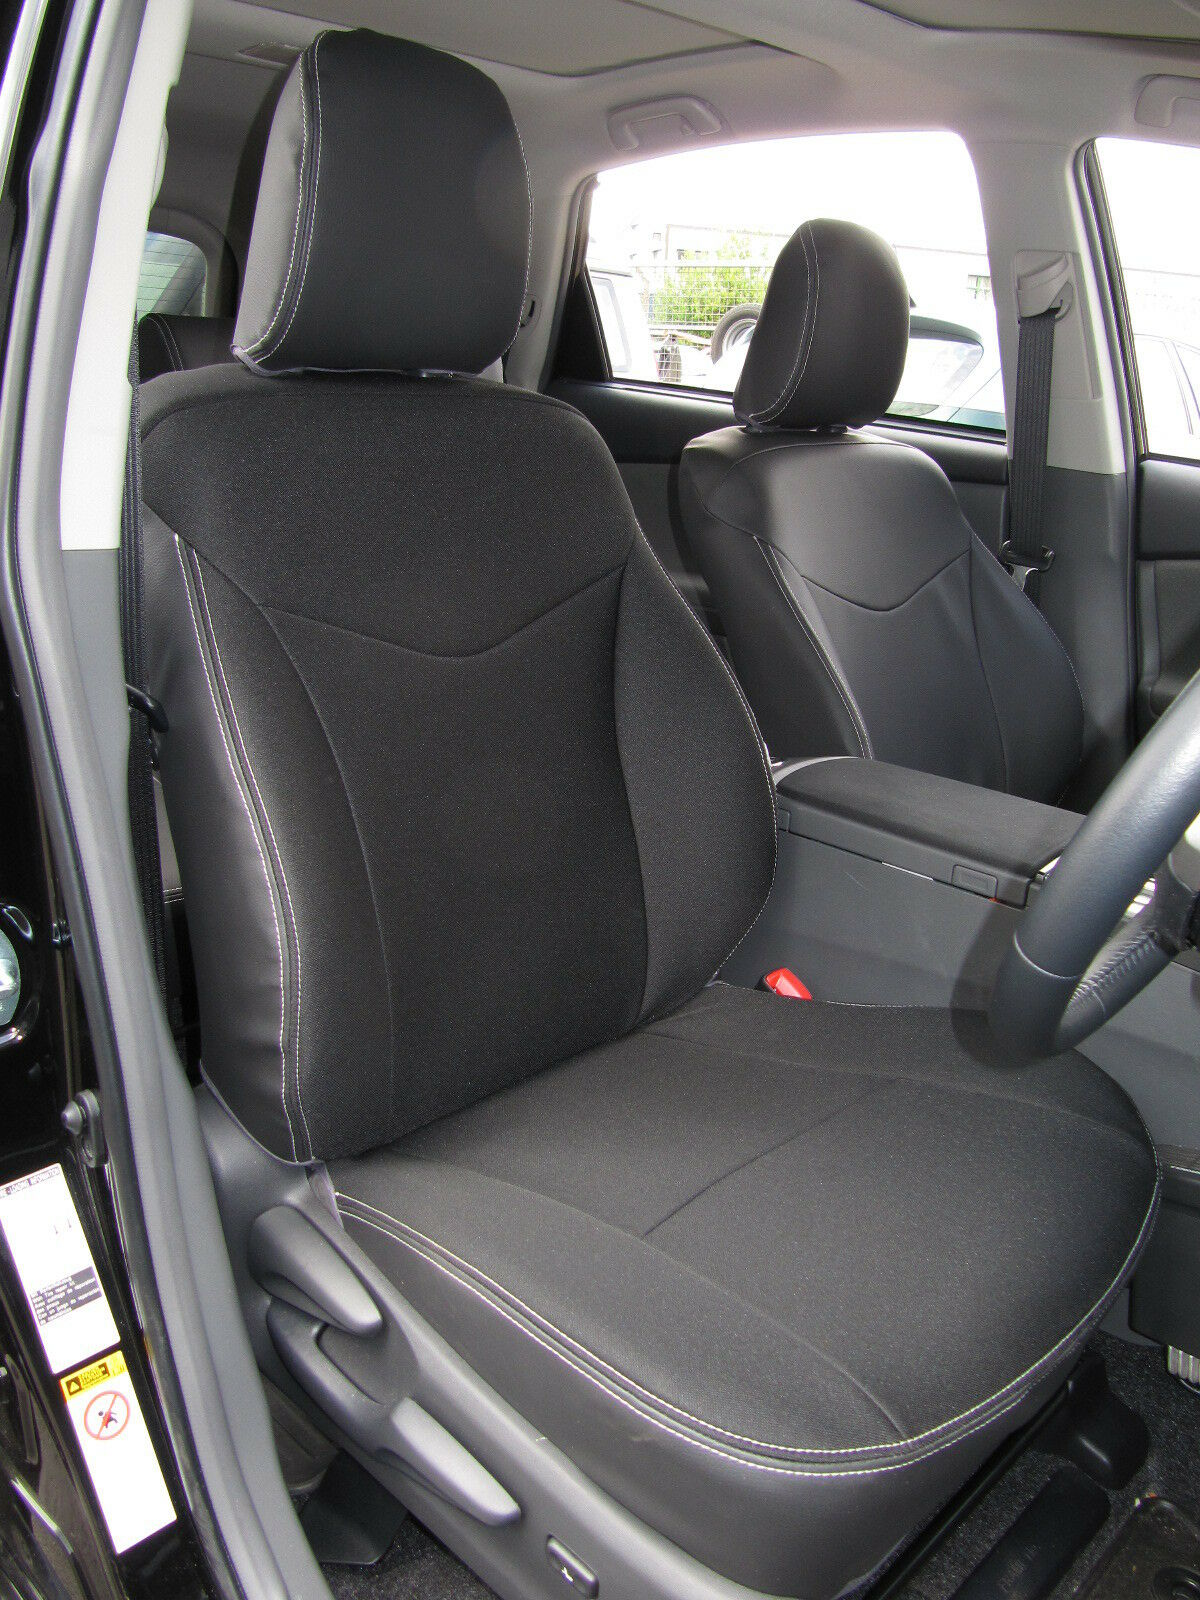 toyota prius plus 7 seater tailored waterproof seat covers taxi pack ebay. Black Bedroom Furniture Sets. Home Design Ideas